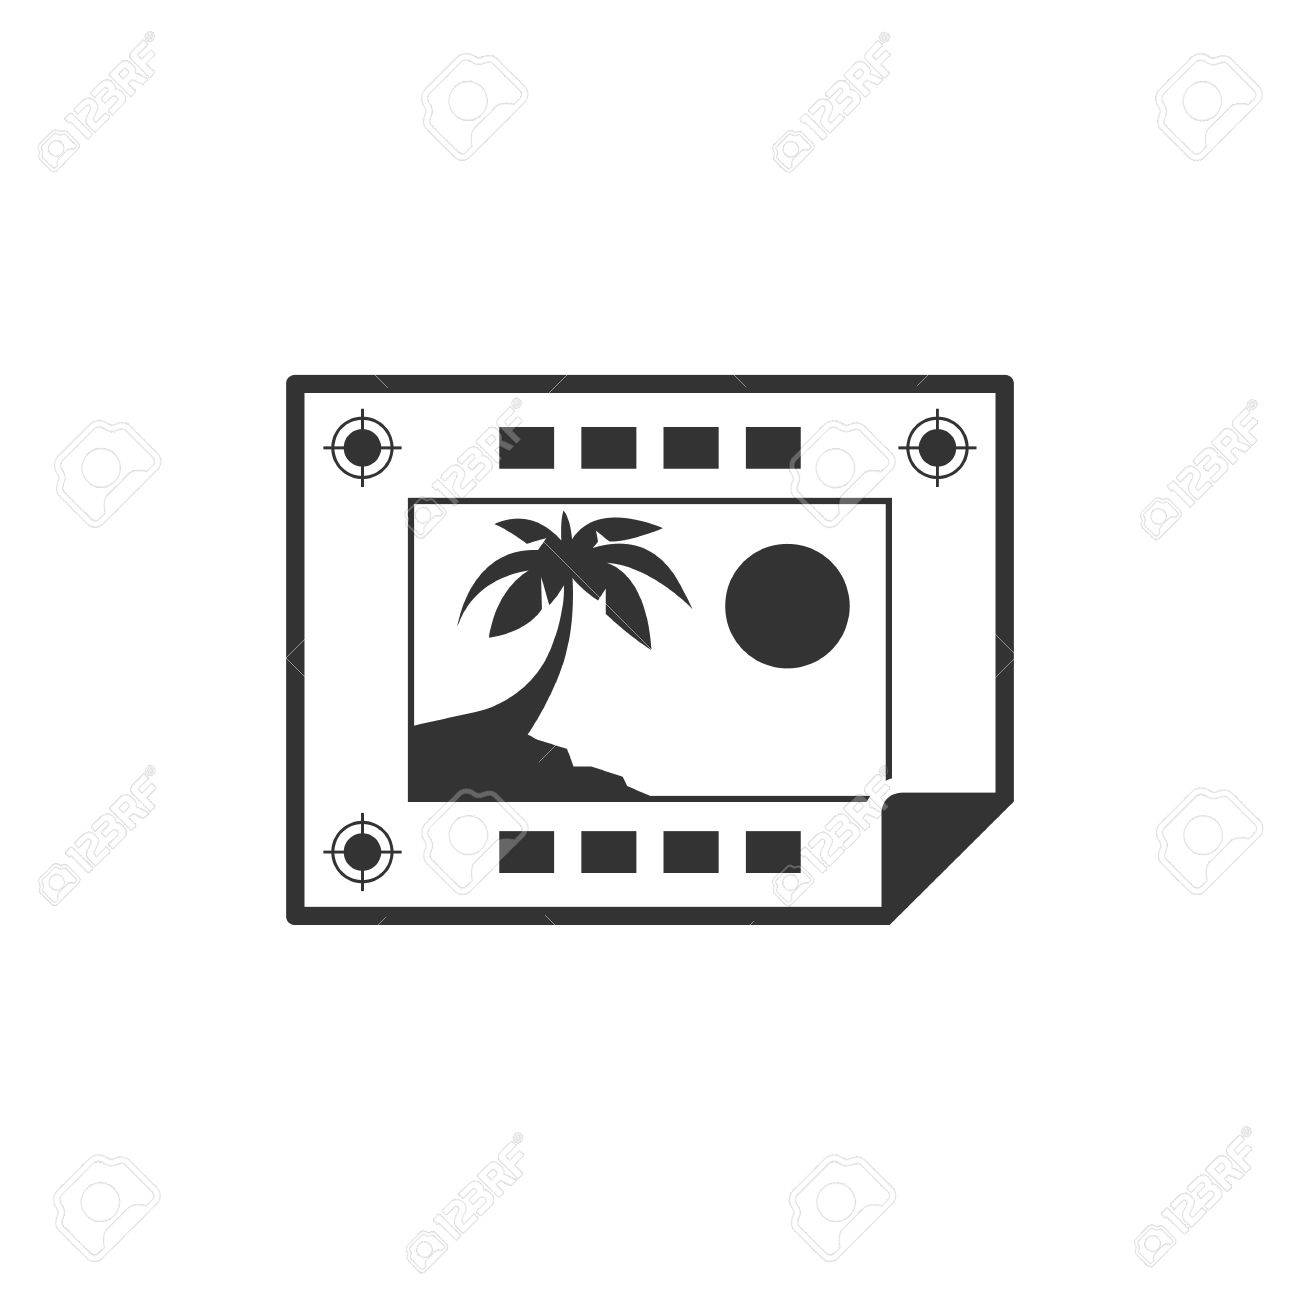 Print Proof Icon In Single Grey Color Paper Registration Marks Cropmarks Press Publishing Stock Vector